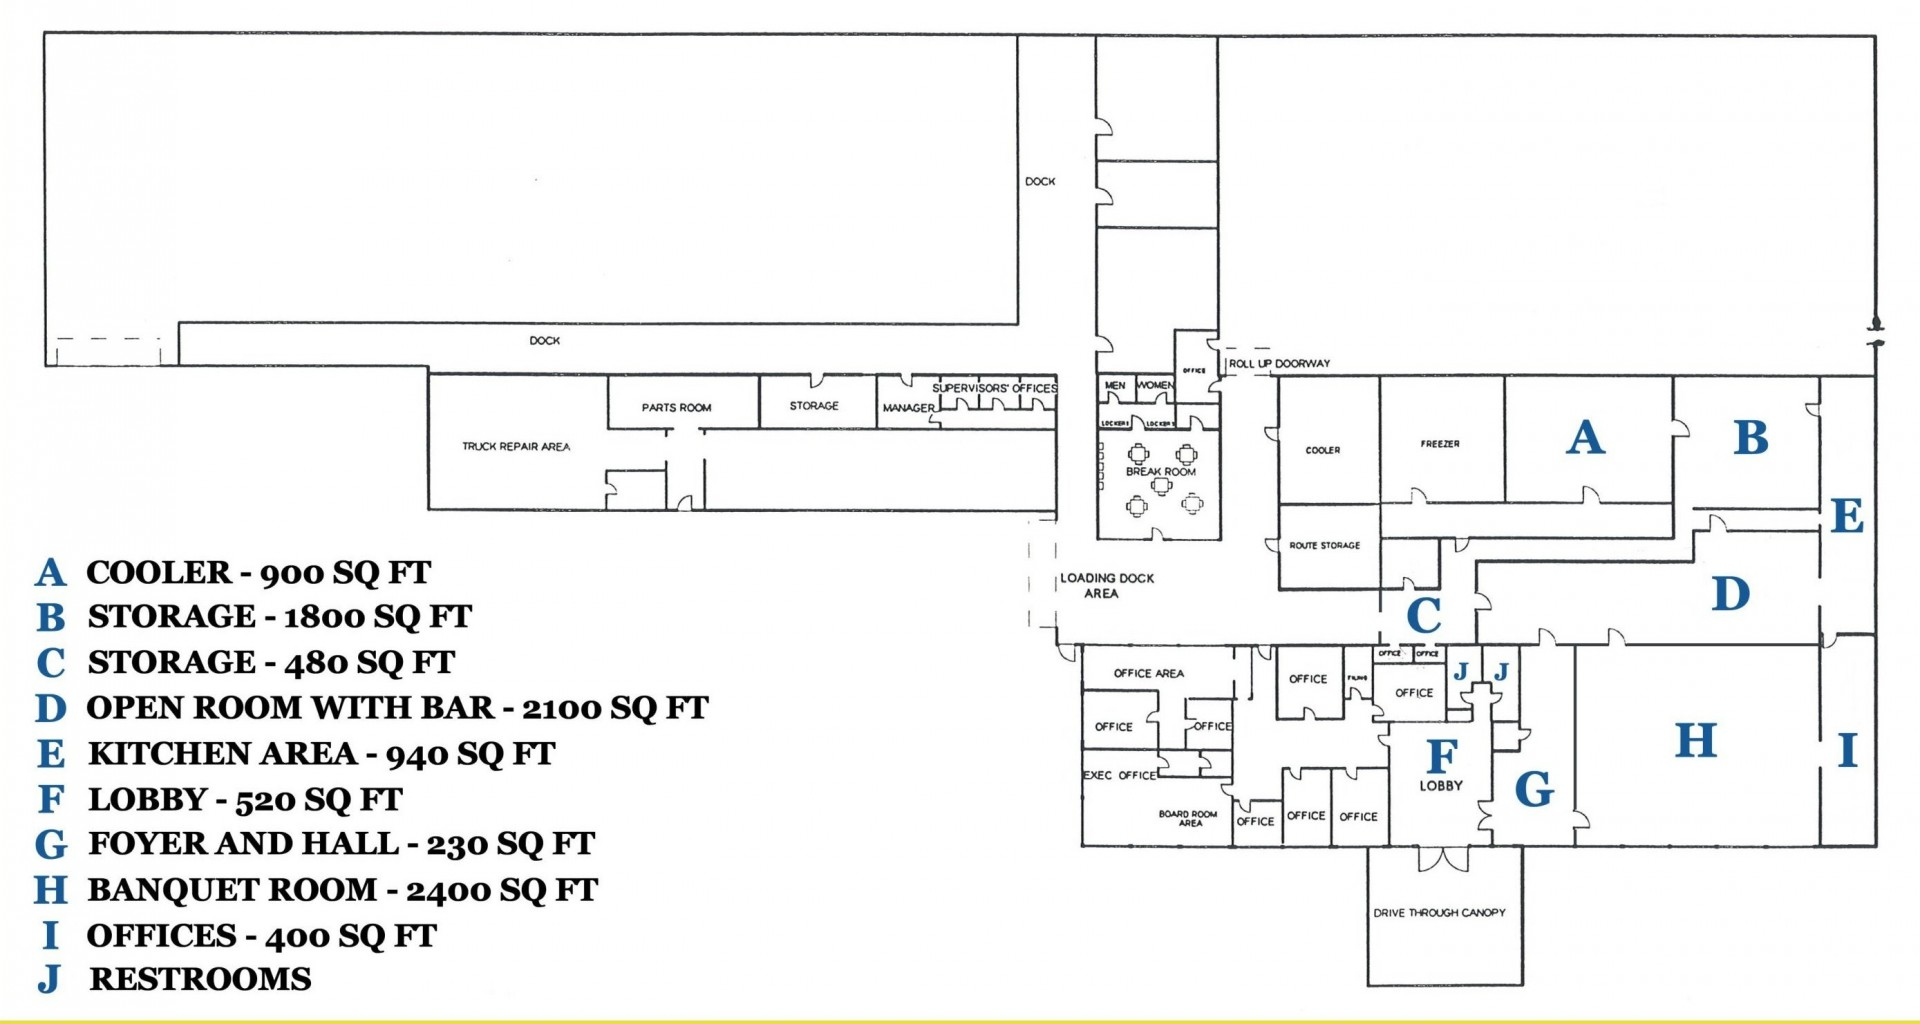 Commercial building for sale dermo realty Commercial building plans for sale